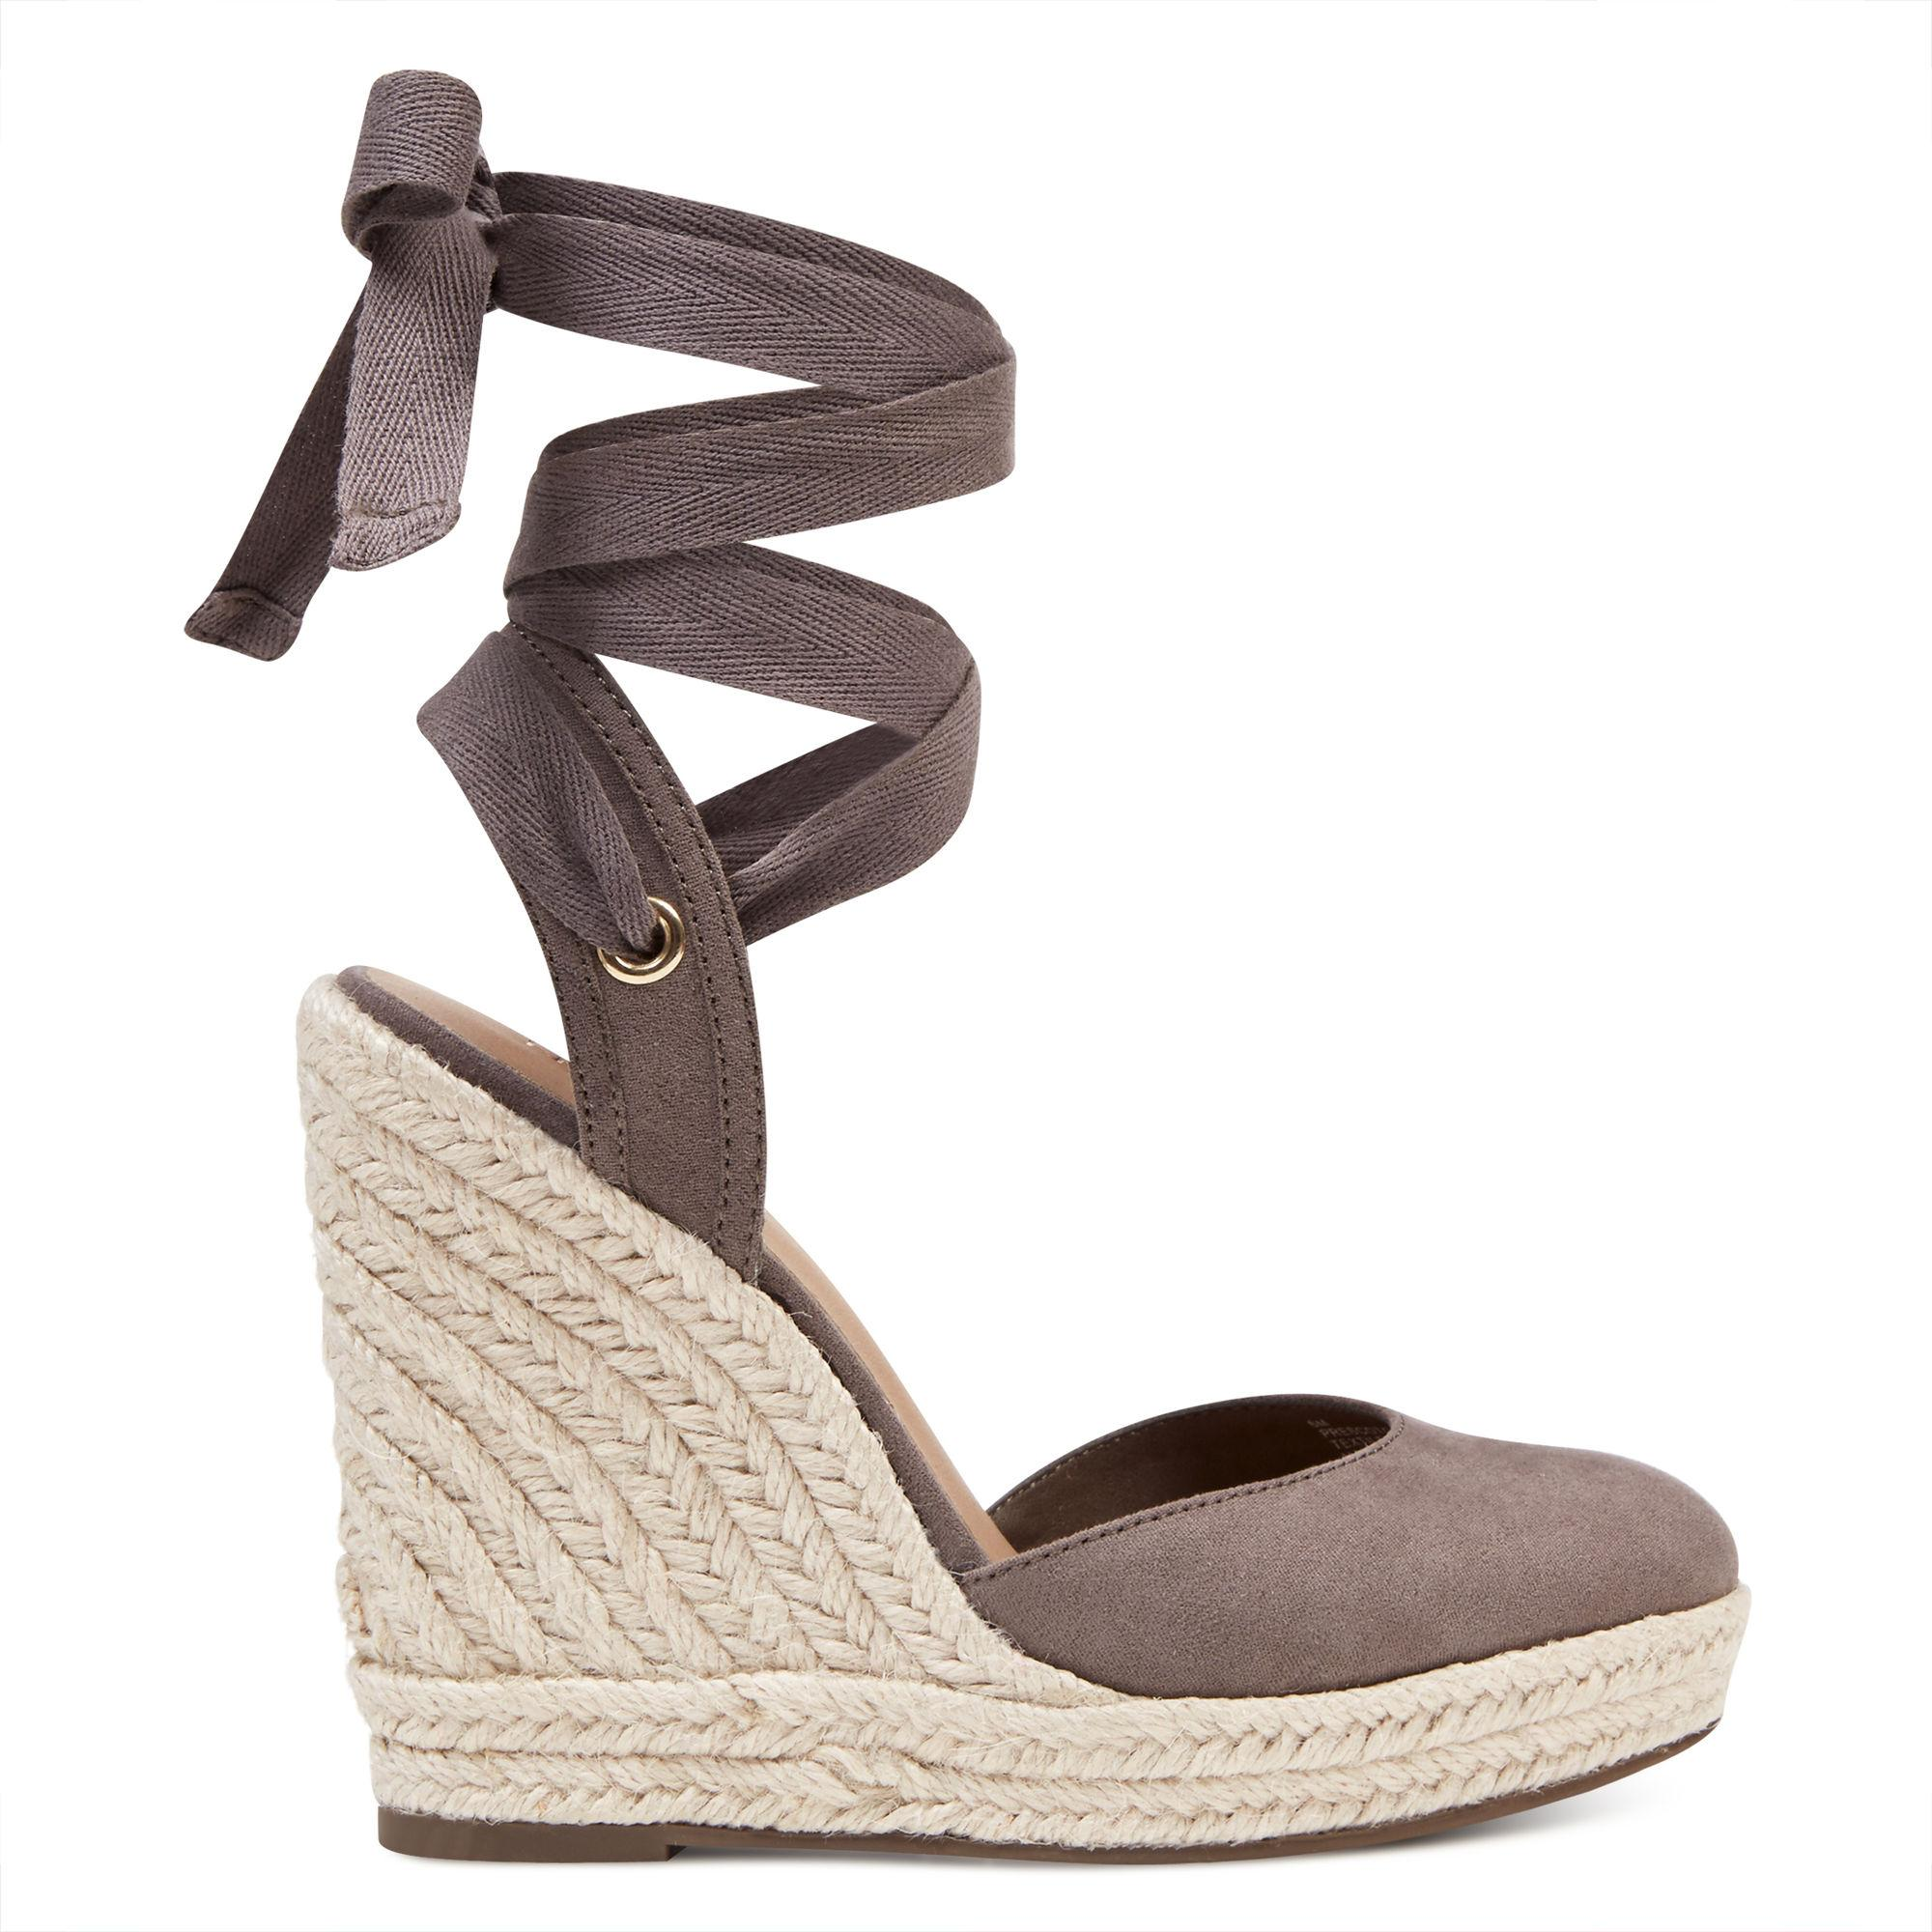 3050854b24e1 Lyst - Nine West Prescot Espadrille Wedges in Gray